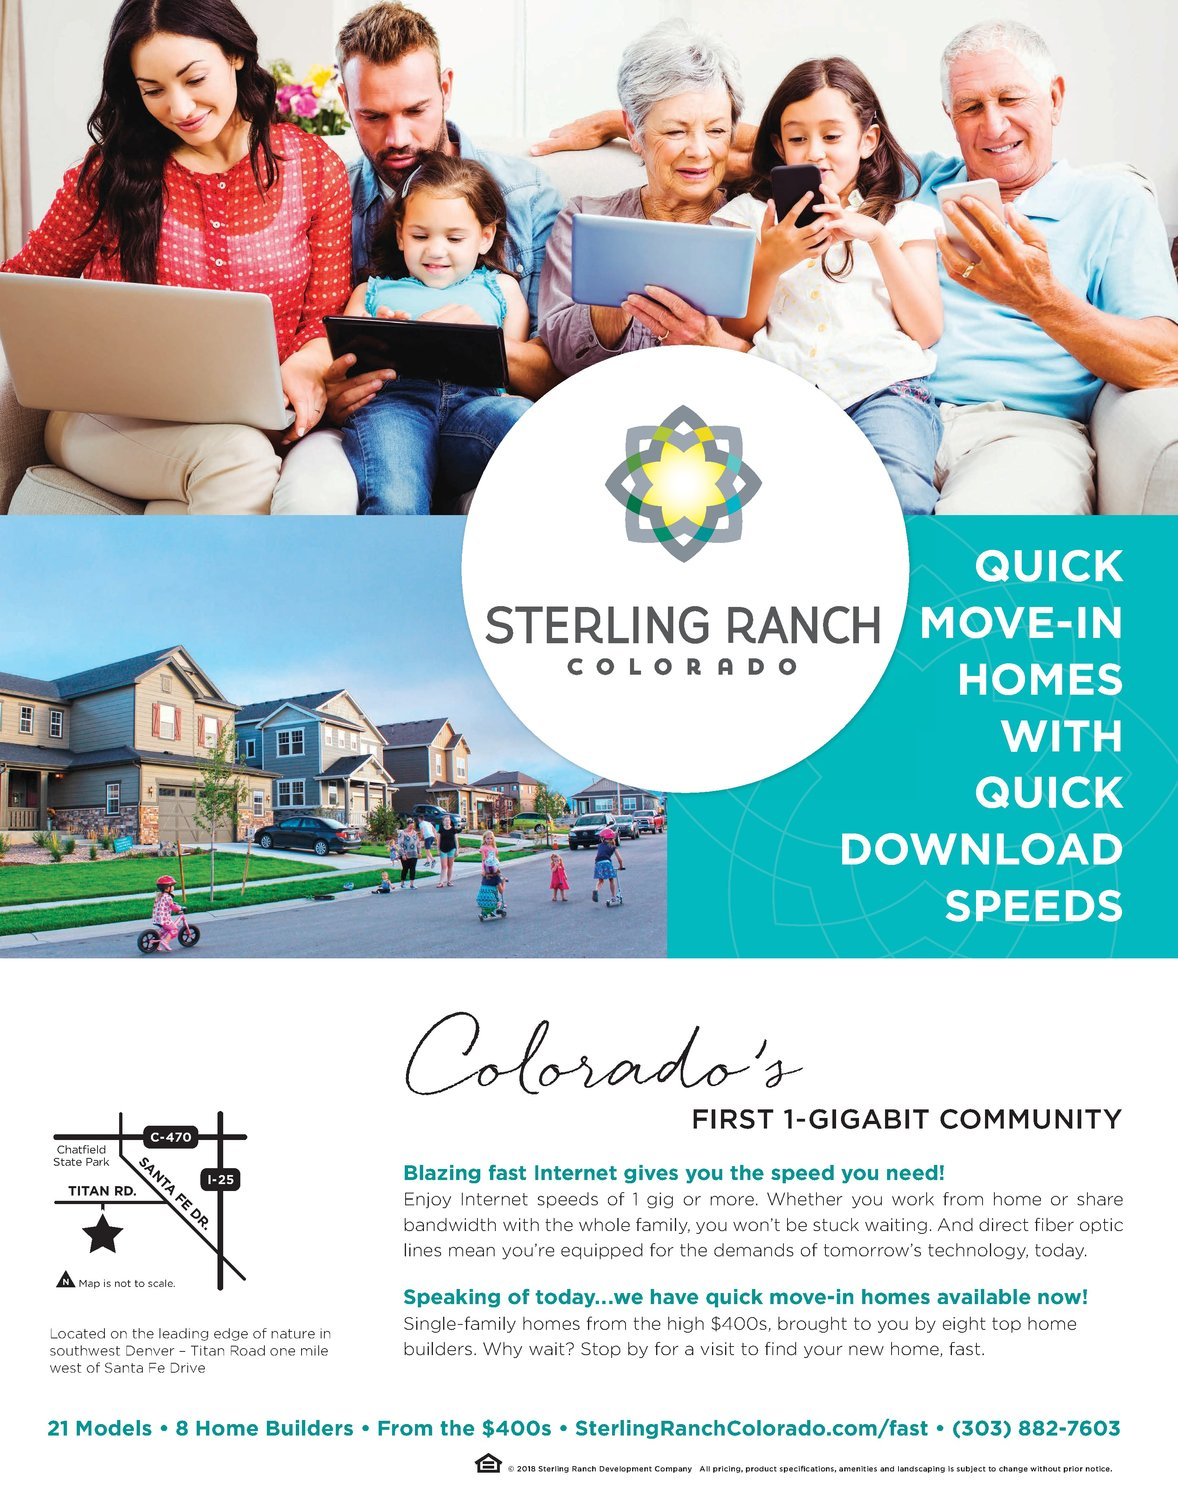 Sterling Ranch Colorado Map.Your Source For Local News In Highlands Ranch Colorado